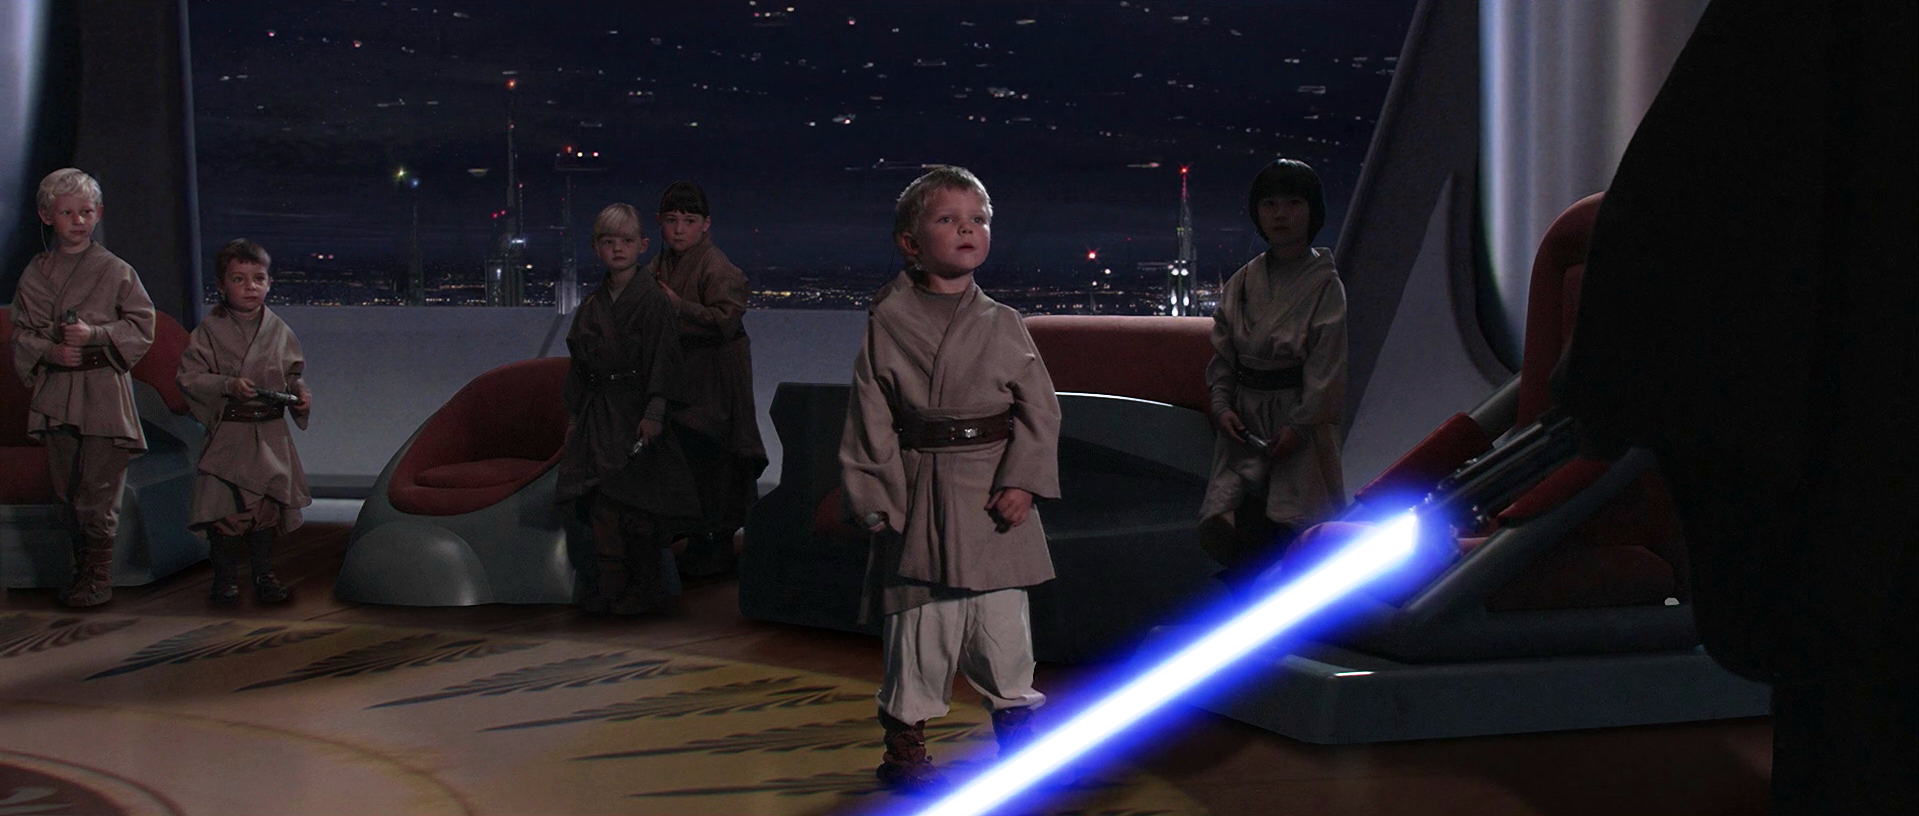 5. REVENGE OF THE SITH (The Execution of Order-66)